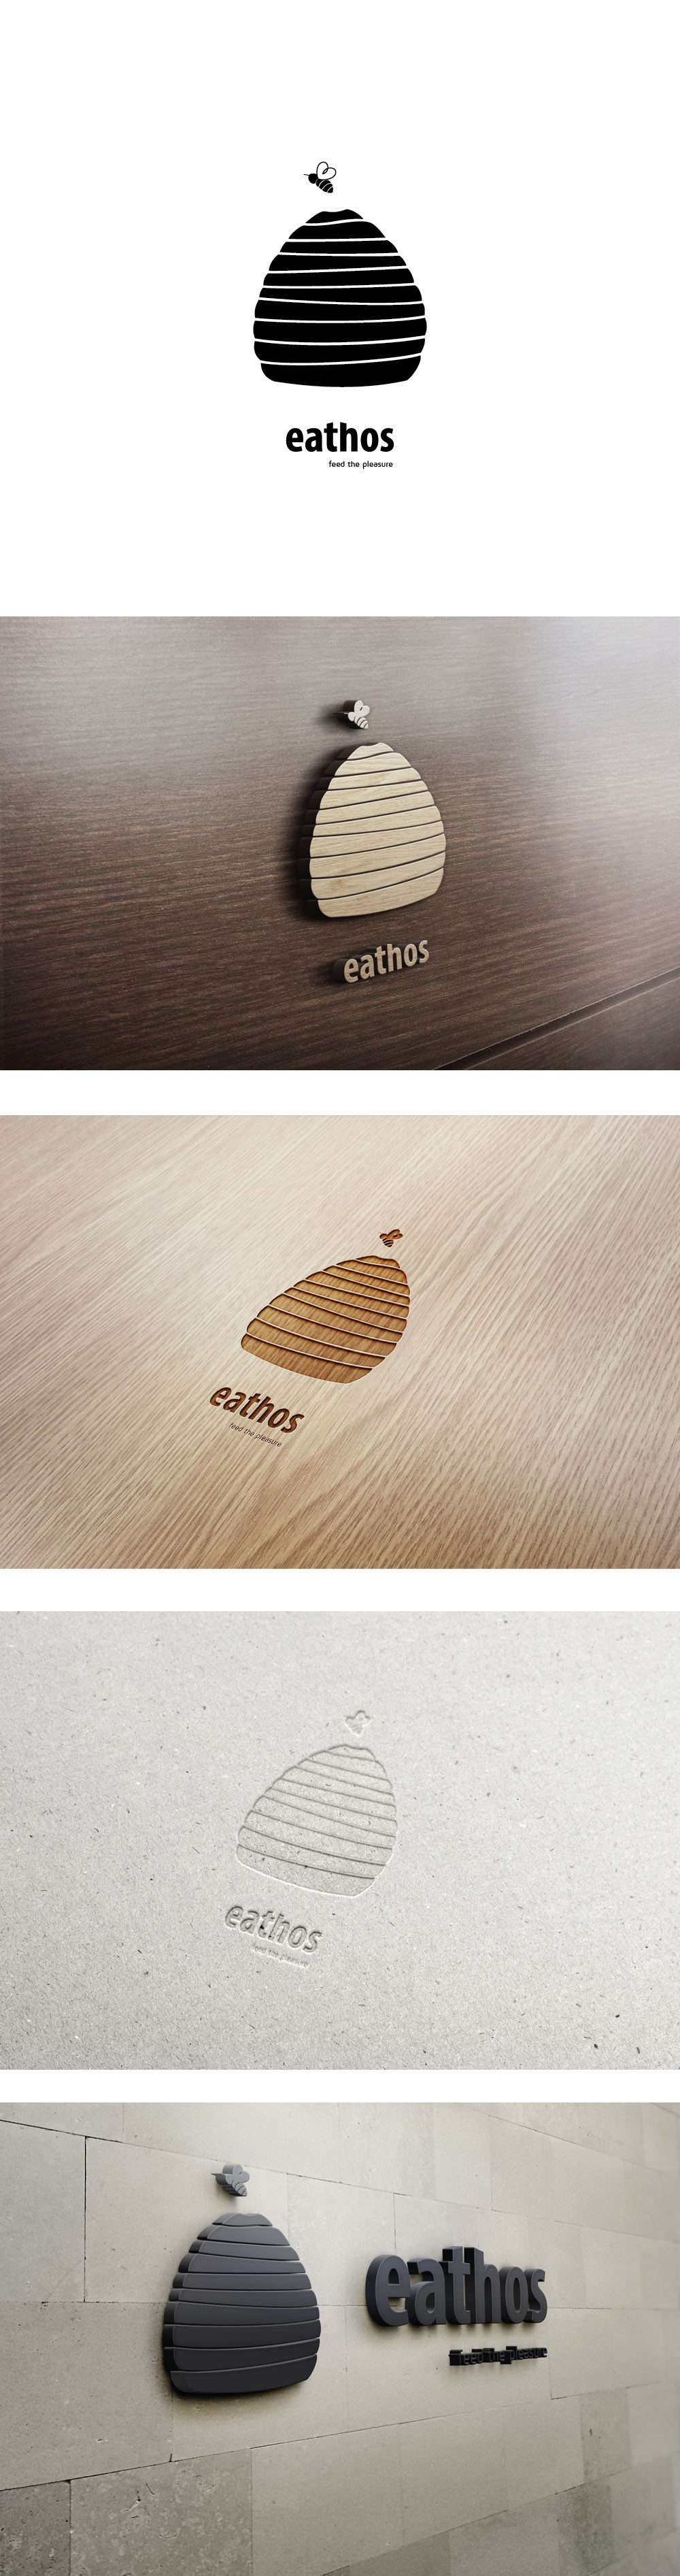 Create a modern LOGO and ICON for high-quality food equipment company (MACHINES)